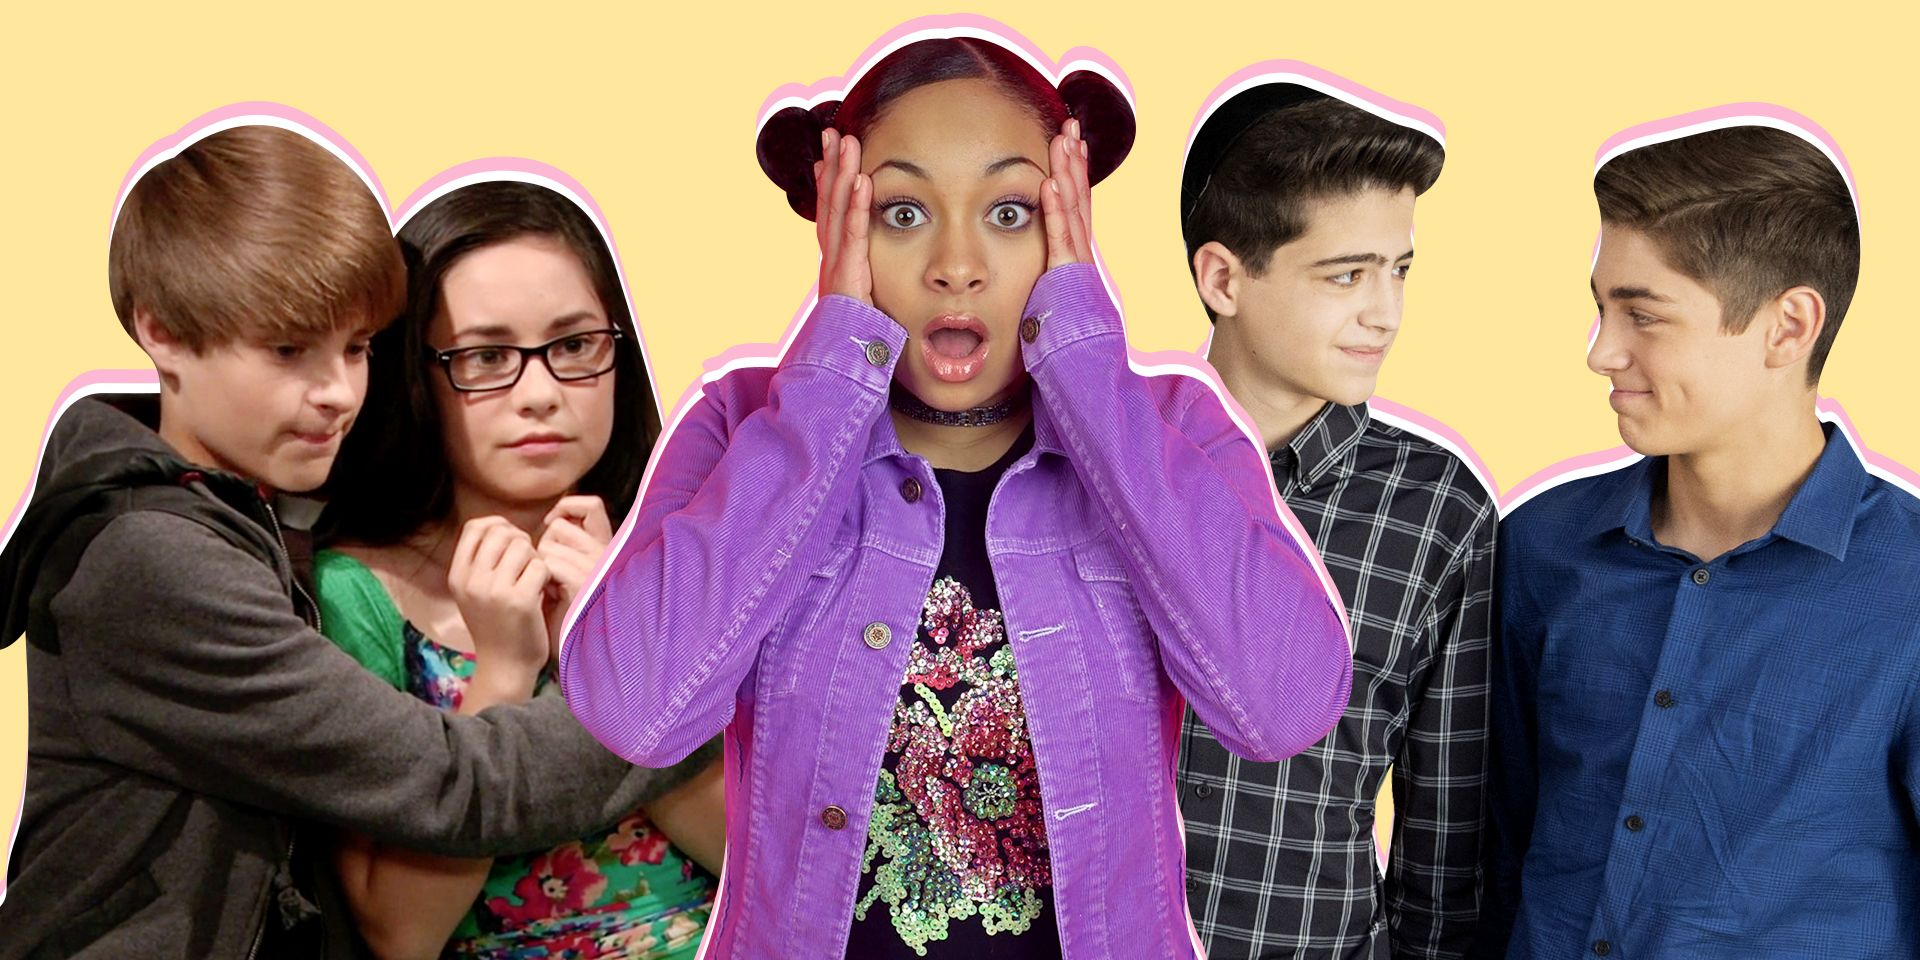 11 of Disney Channel's Most Life-Changing Episodes